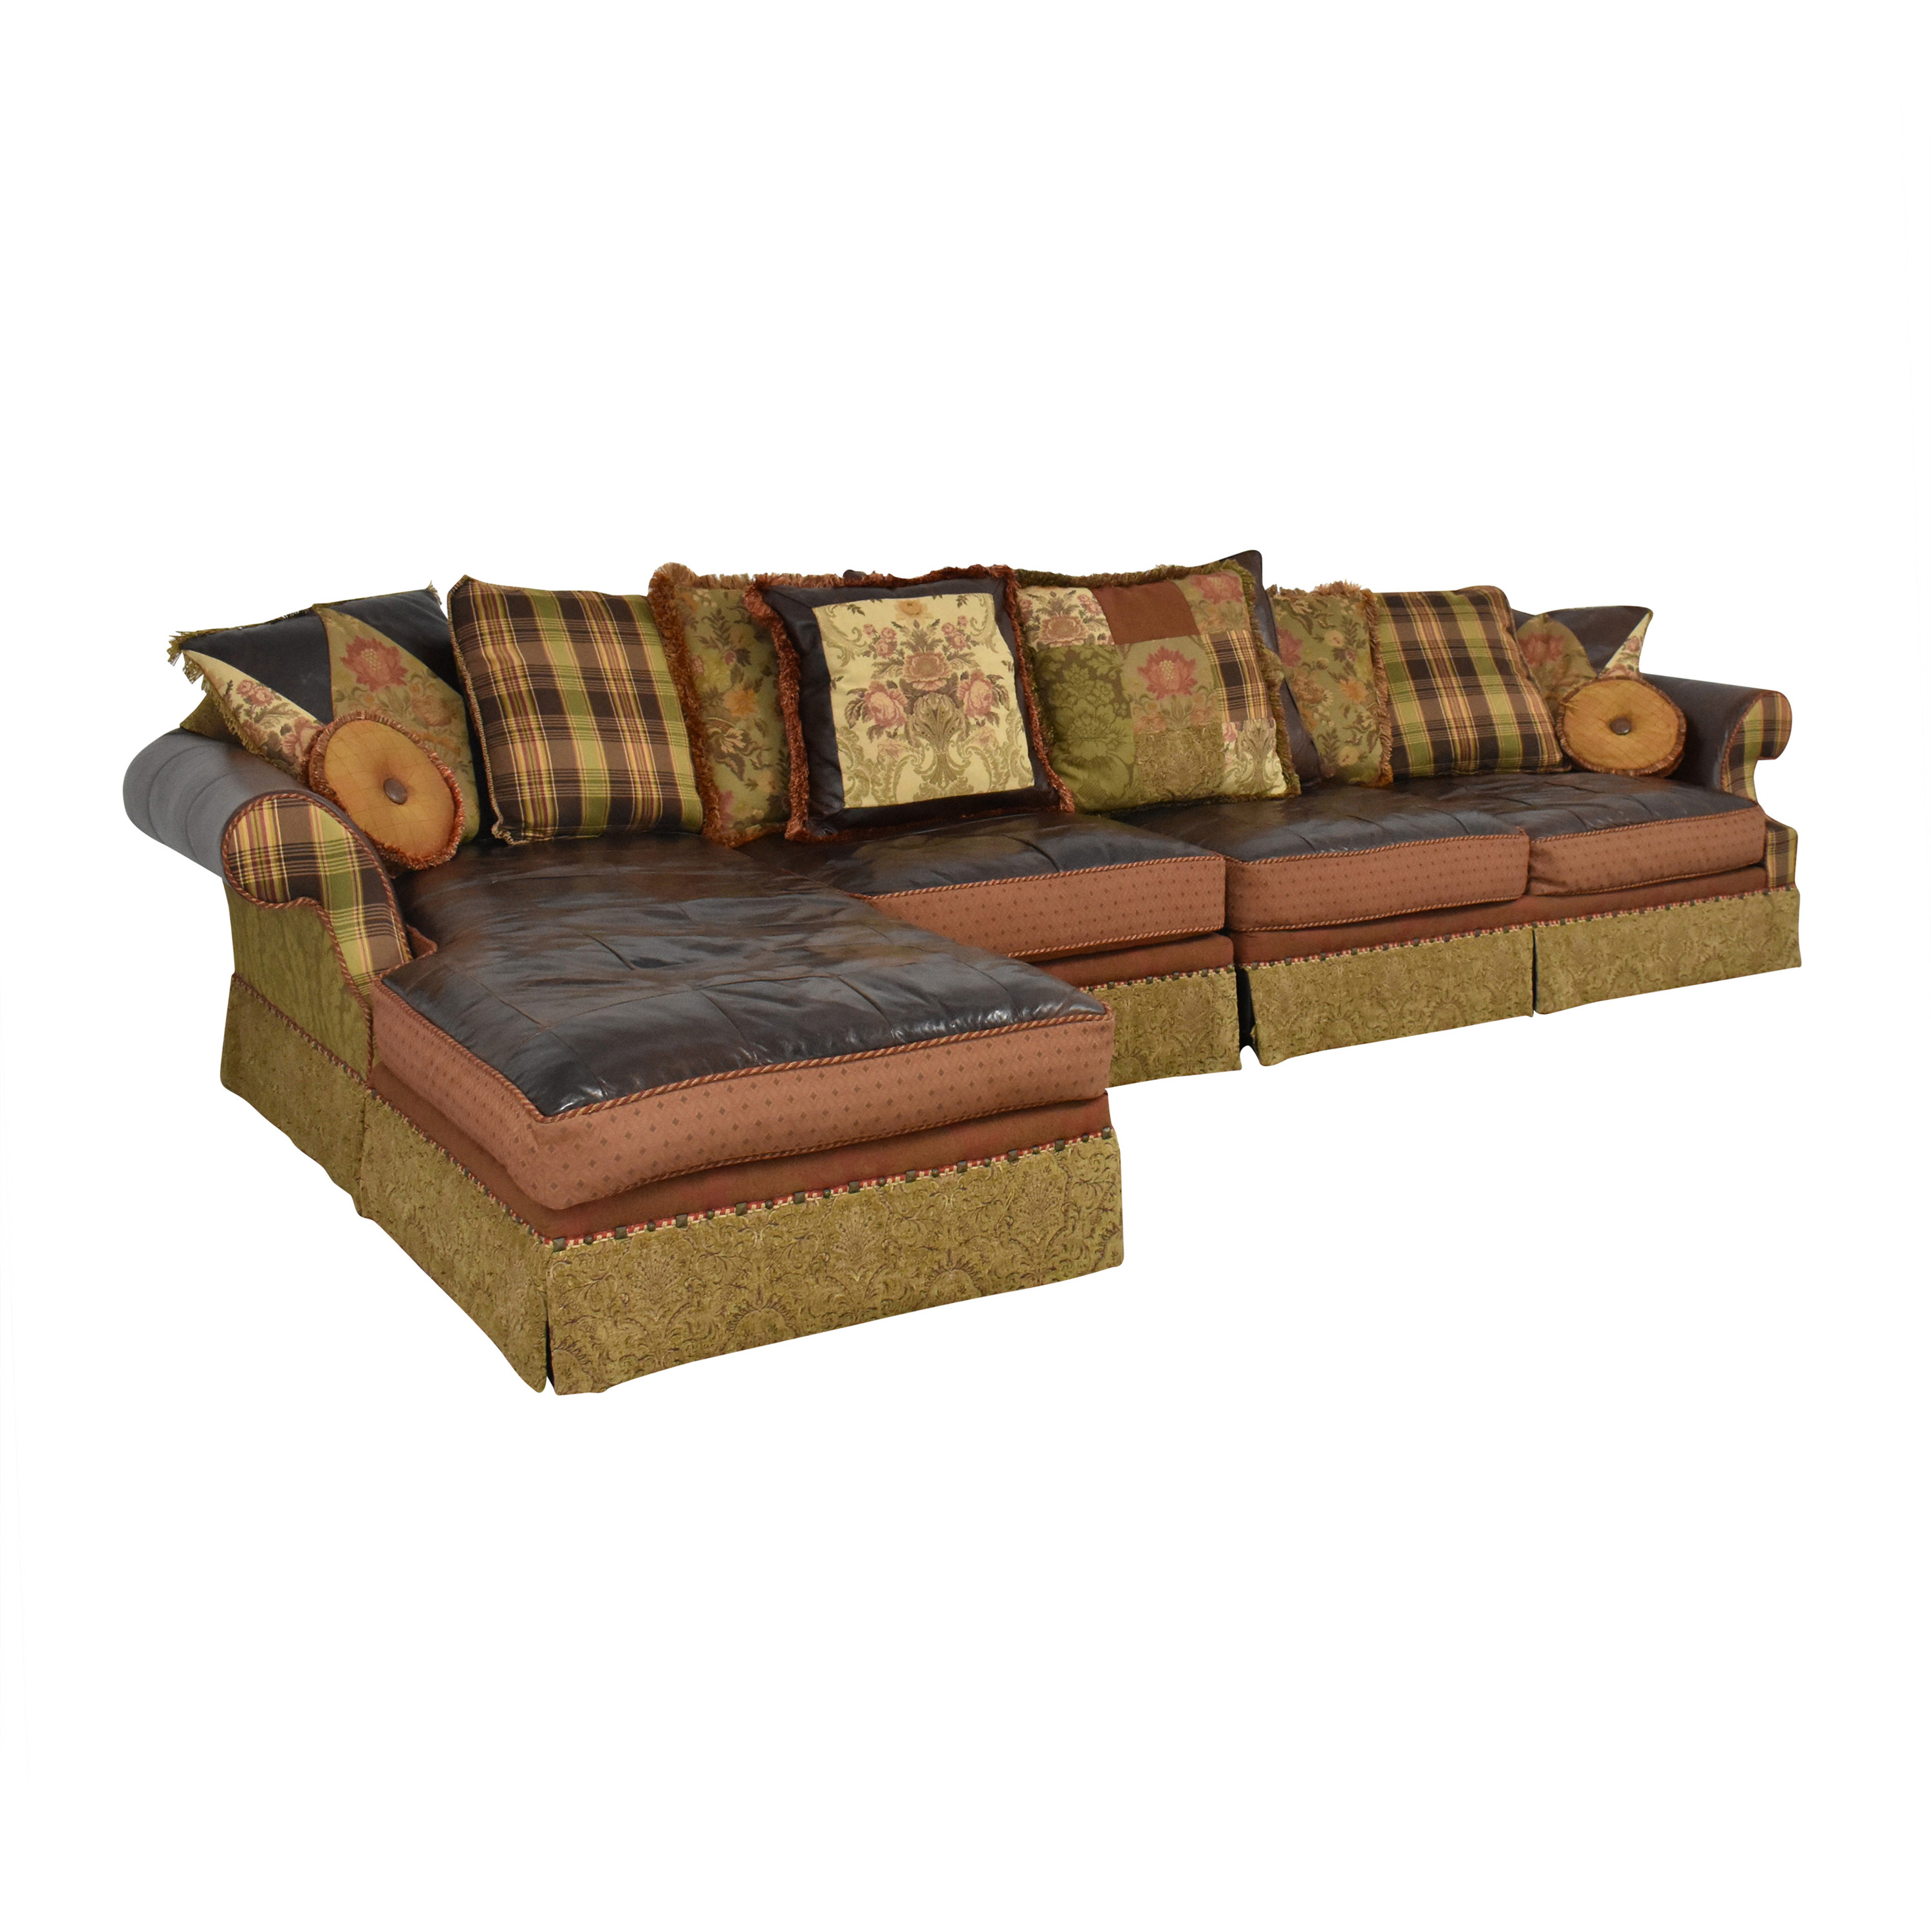 Key City Jeff Zimmerman Collection Mixed Media Sectional sale